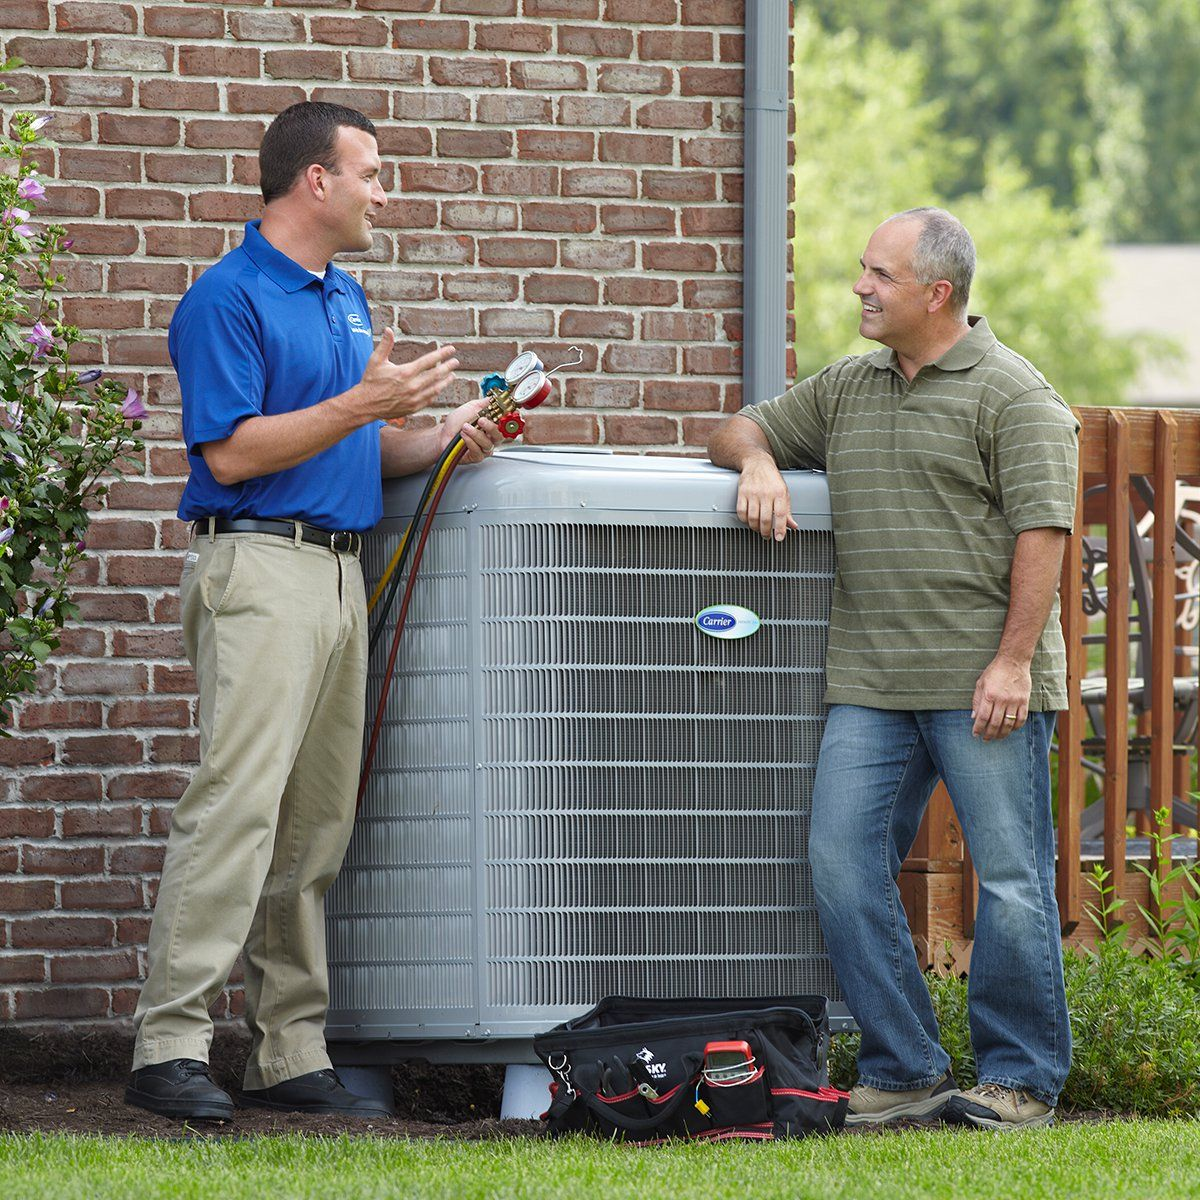 Cleaning air conditioners in the spring air conditioner